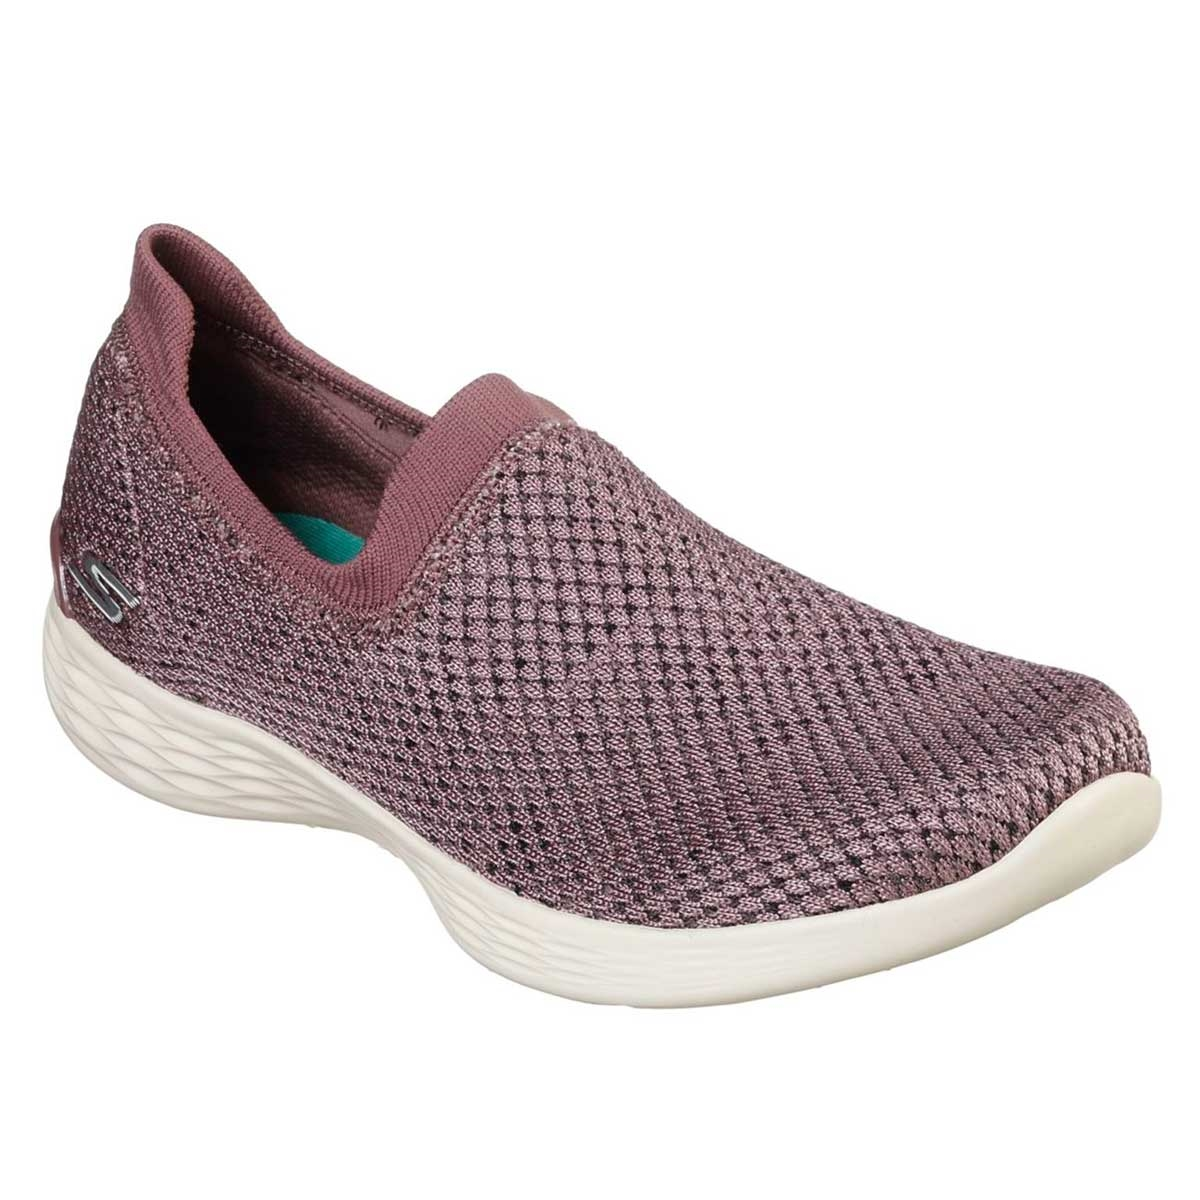 603bacc70dee Skechers You Define - Allegra sko til dame i mauve